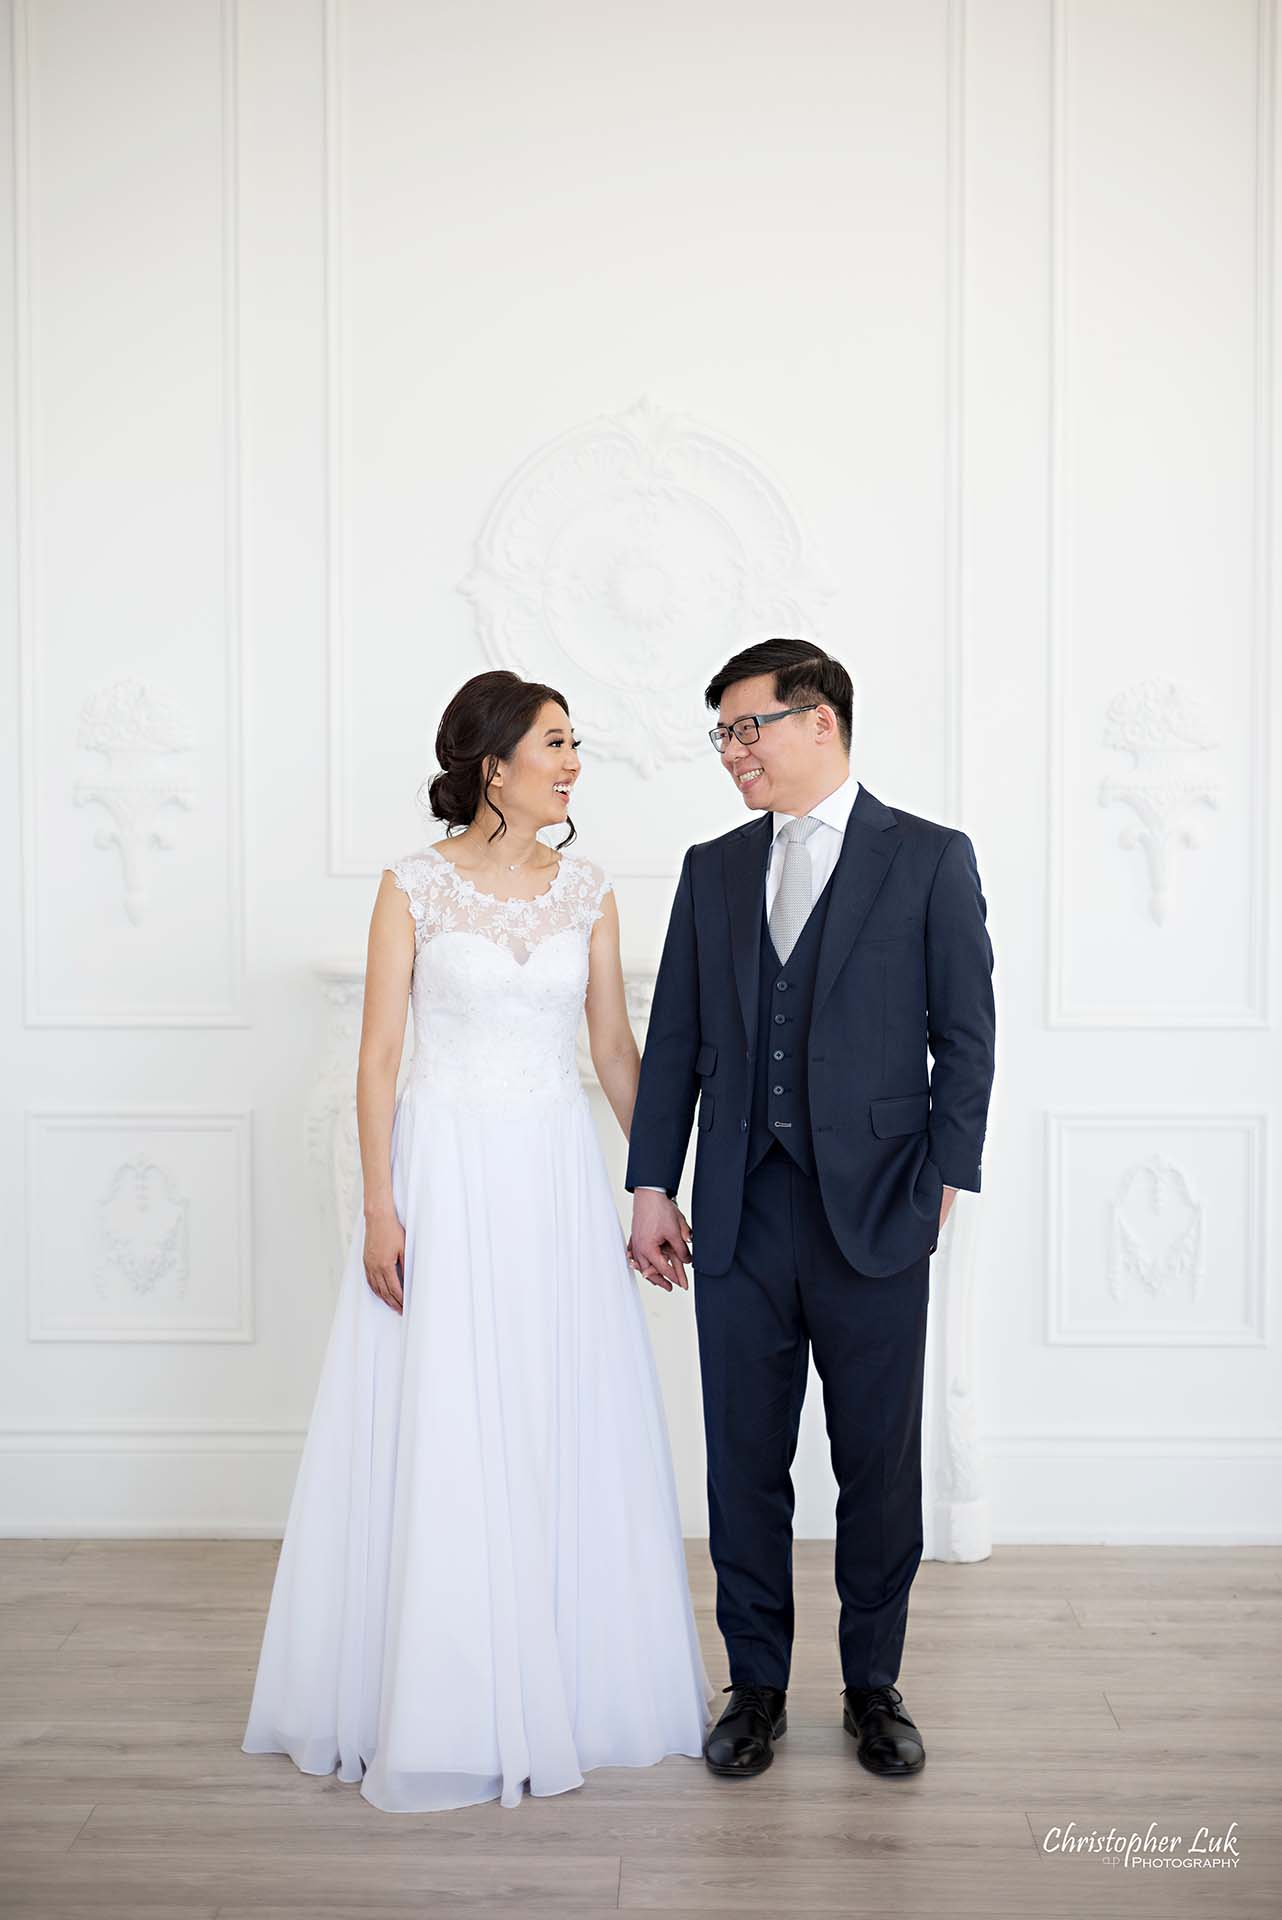 Christopher Luk Toronto Wedding Photographer - Mint Room Studios Bride Groom Natural Candid Photojournalistic Conservatory Ballroom Hug Laugh Looking Each Other Full Body Fireplace Mantle